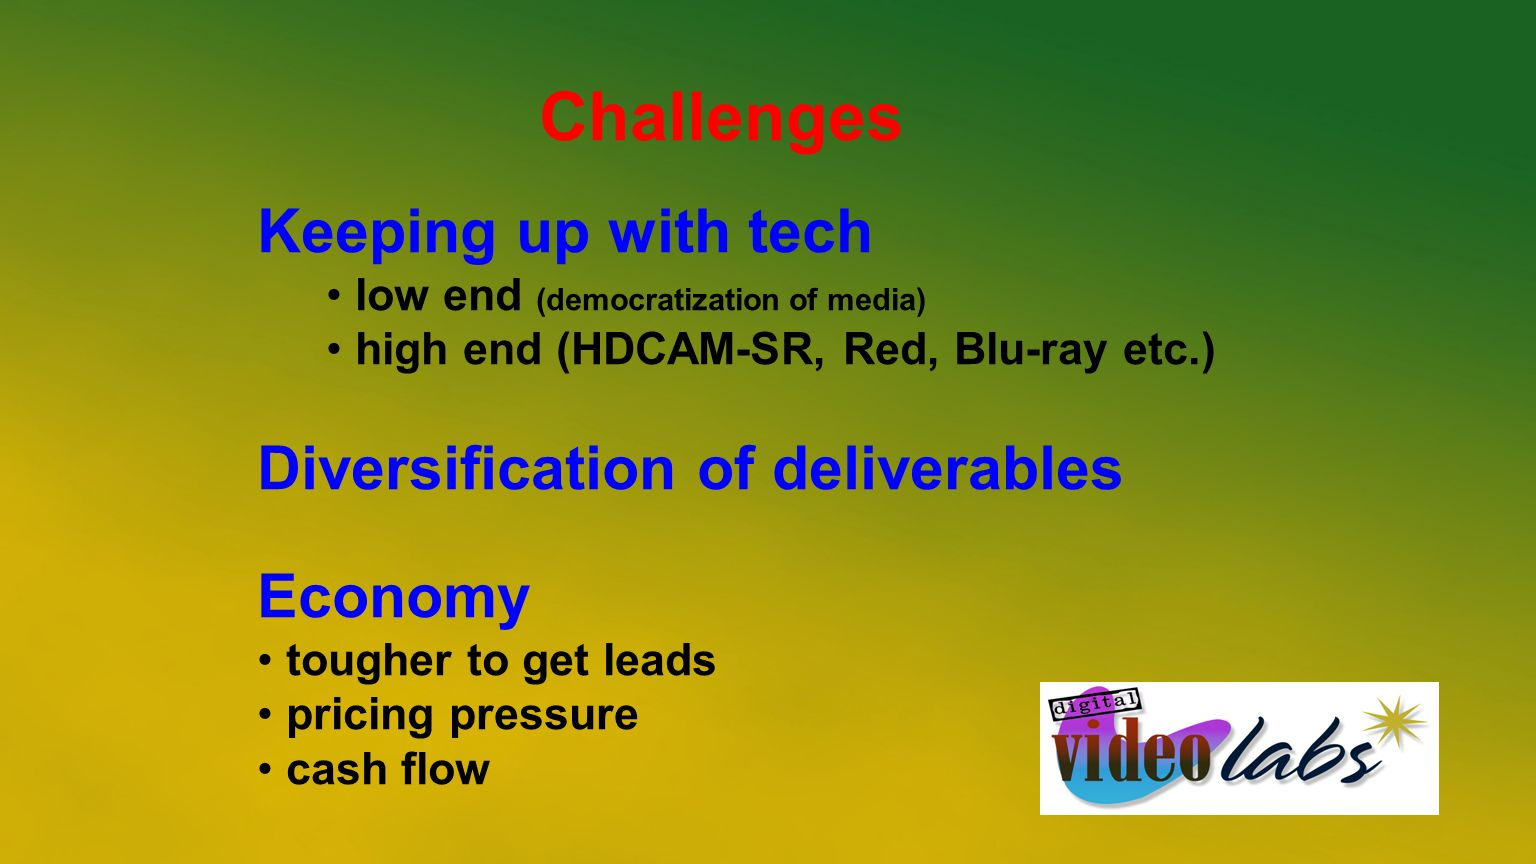 Challenges Keeping up with tech low end (democratization of media) high end (HDCAM-SR, Red, Blu-ray etc.) Diversification of deliverables Economy tougher to get leads pricing pressure cash flow